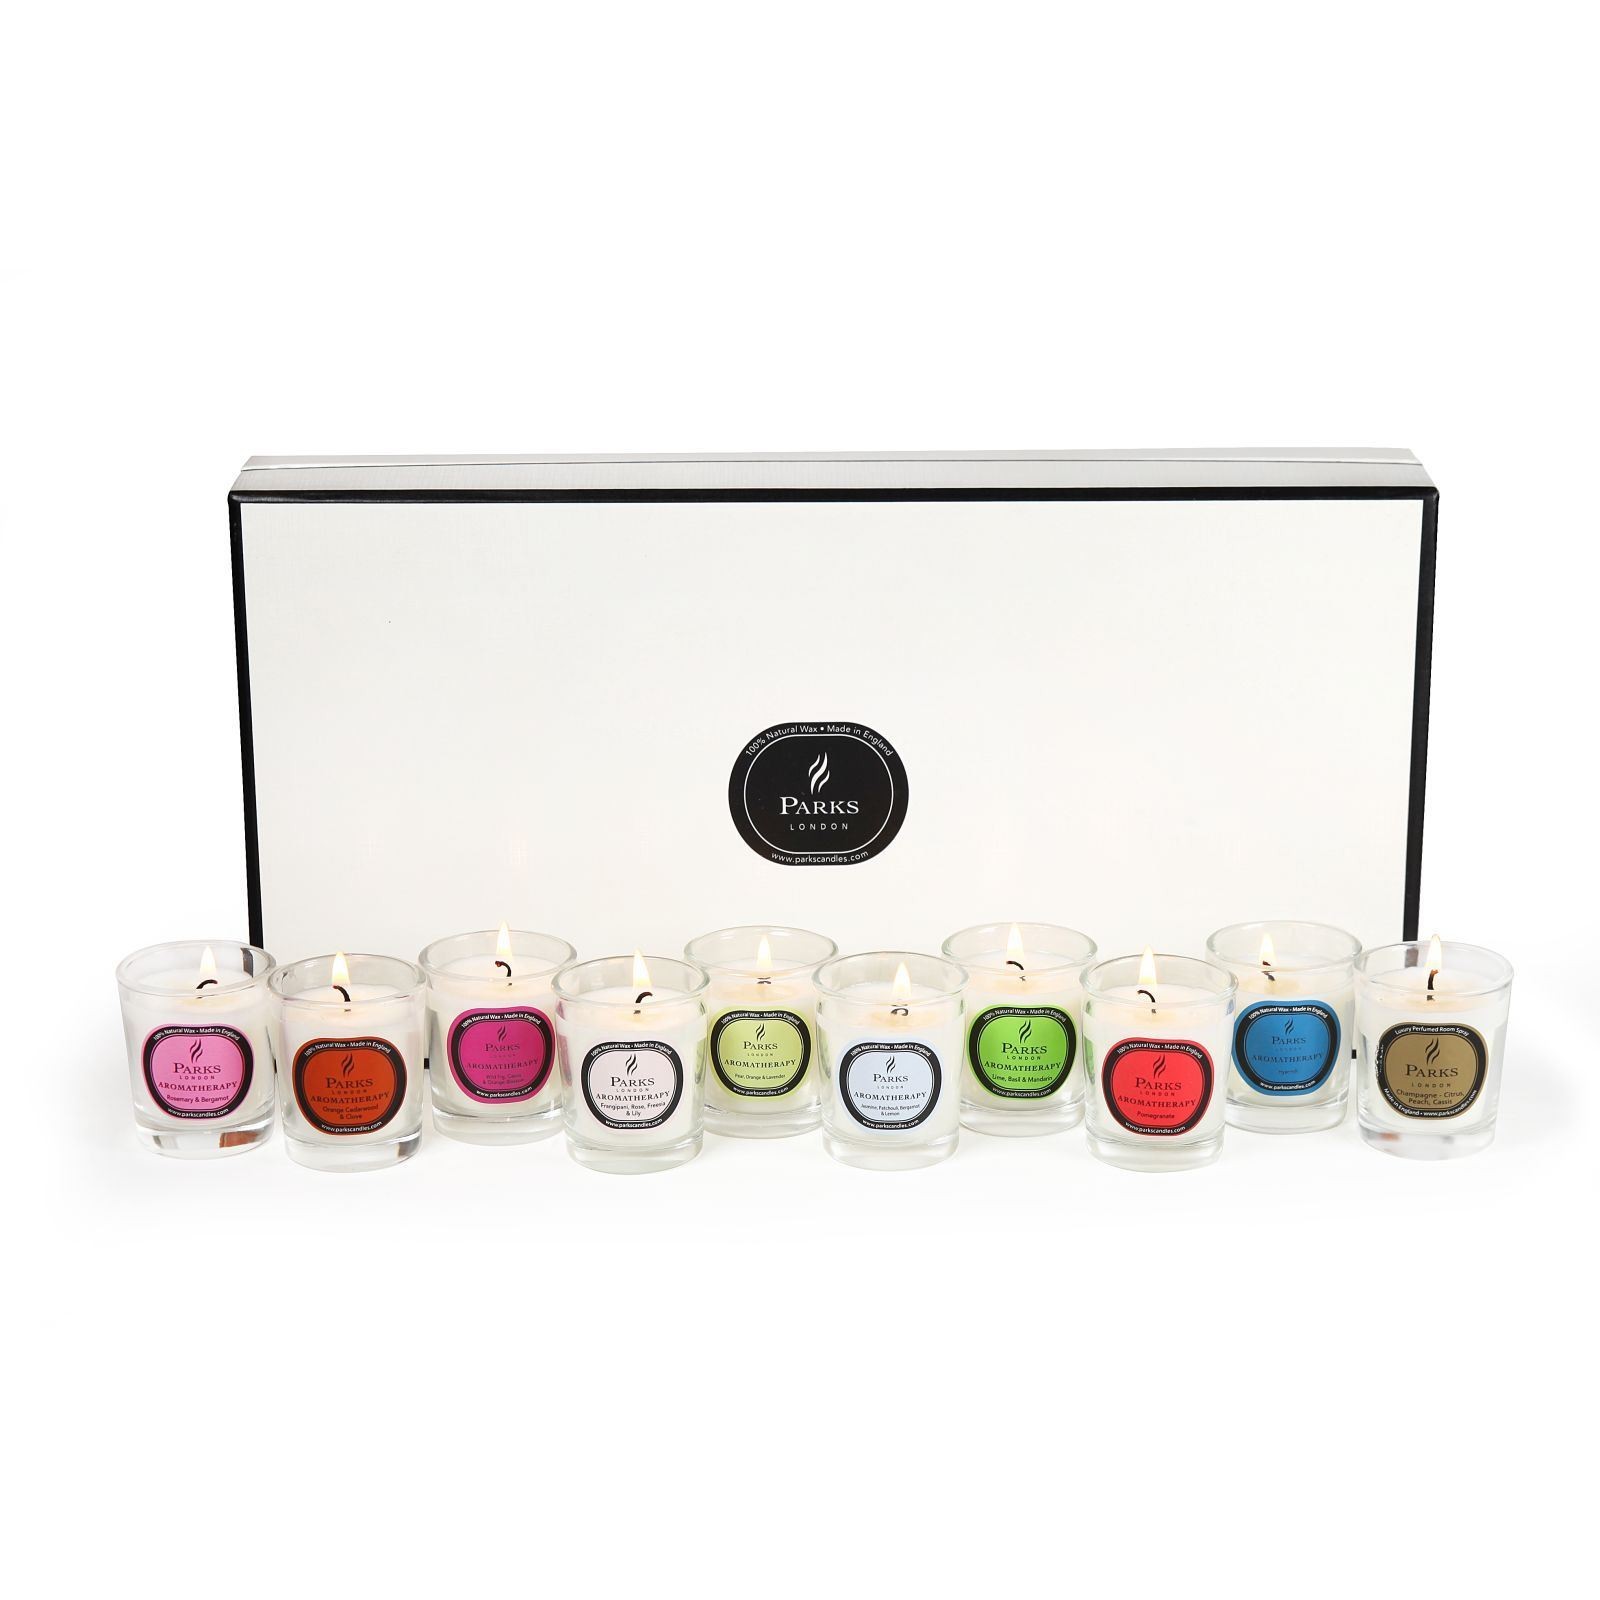 parks london coffret de 10 bougies parfum es aromatheraphy brandalley. Black Bedroom Furniture Sets. Home Design Ideas